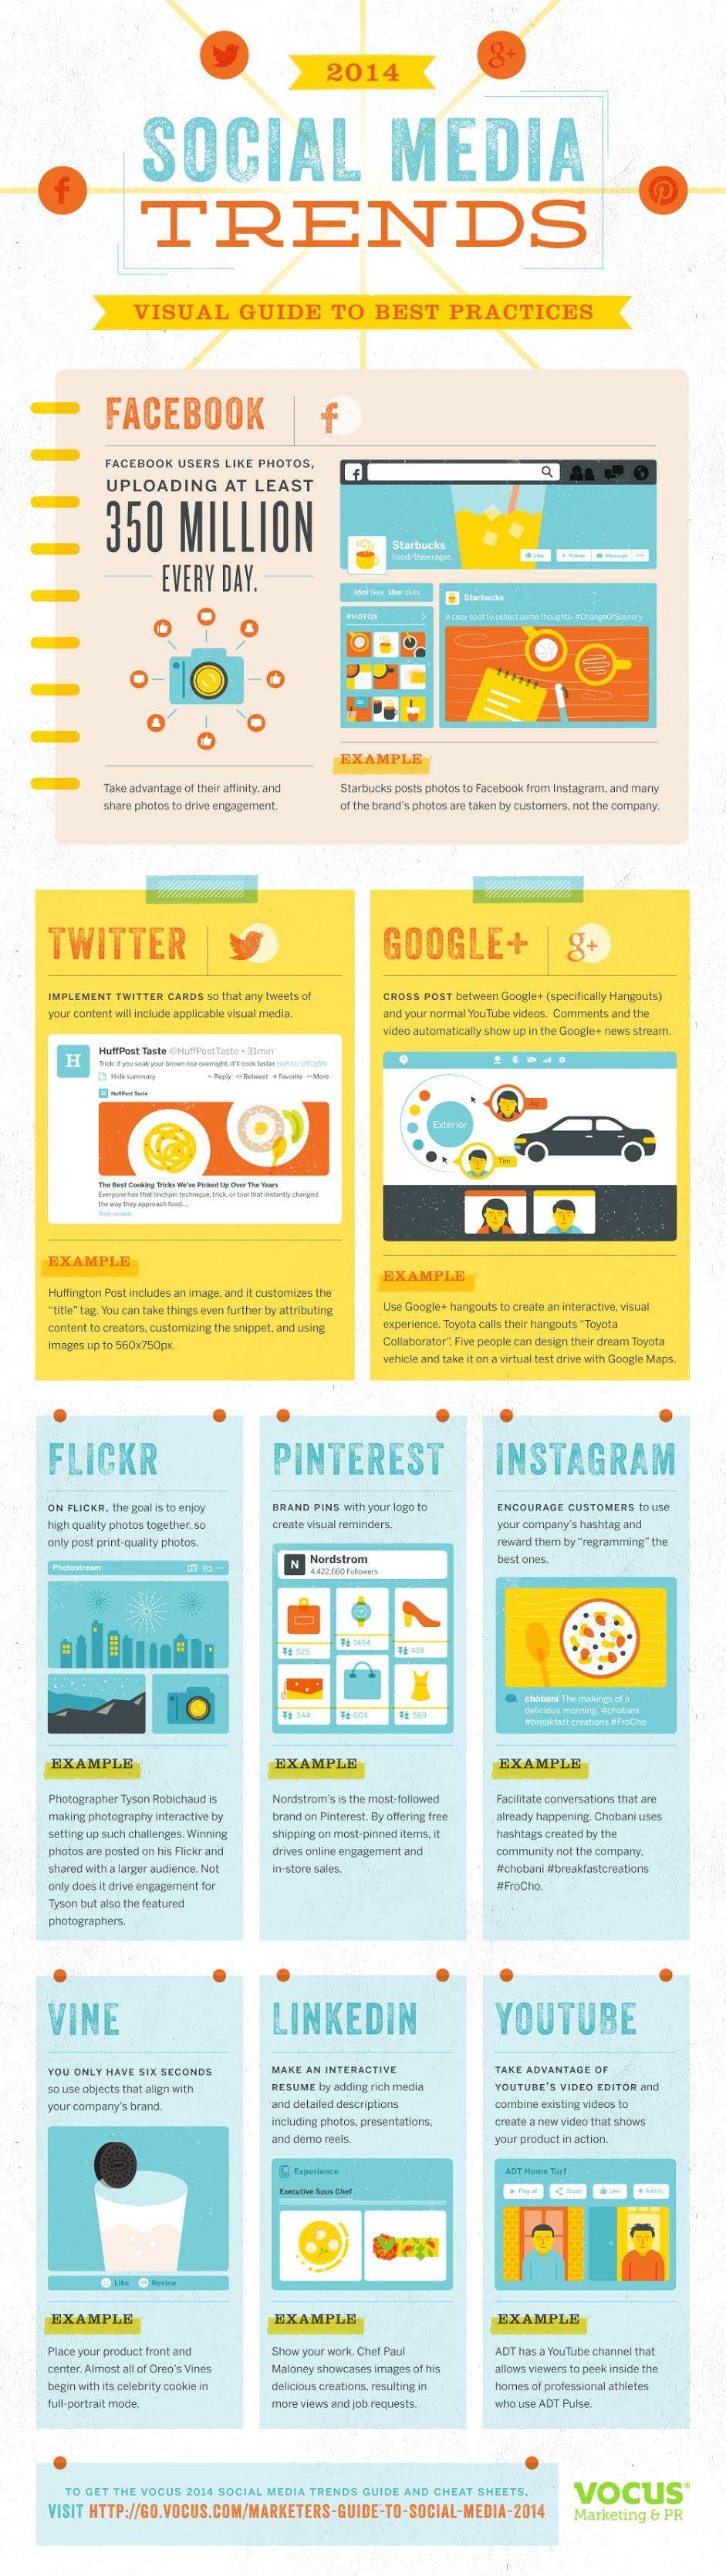 #SocialMedia Marketing Trends And Best Practices 2014 For Business - #infographic